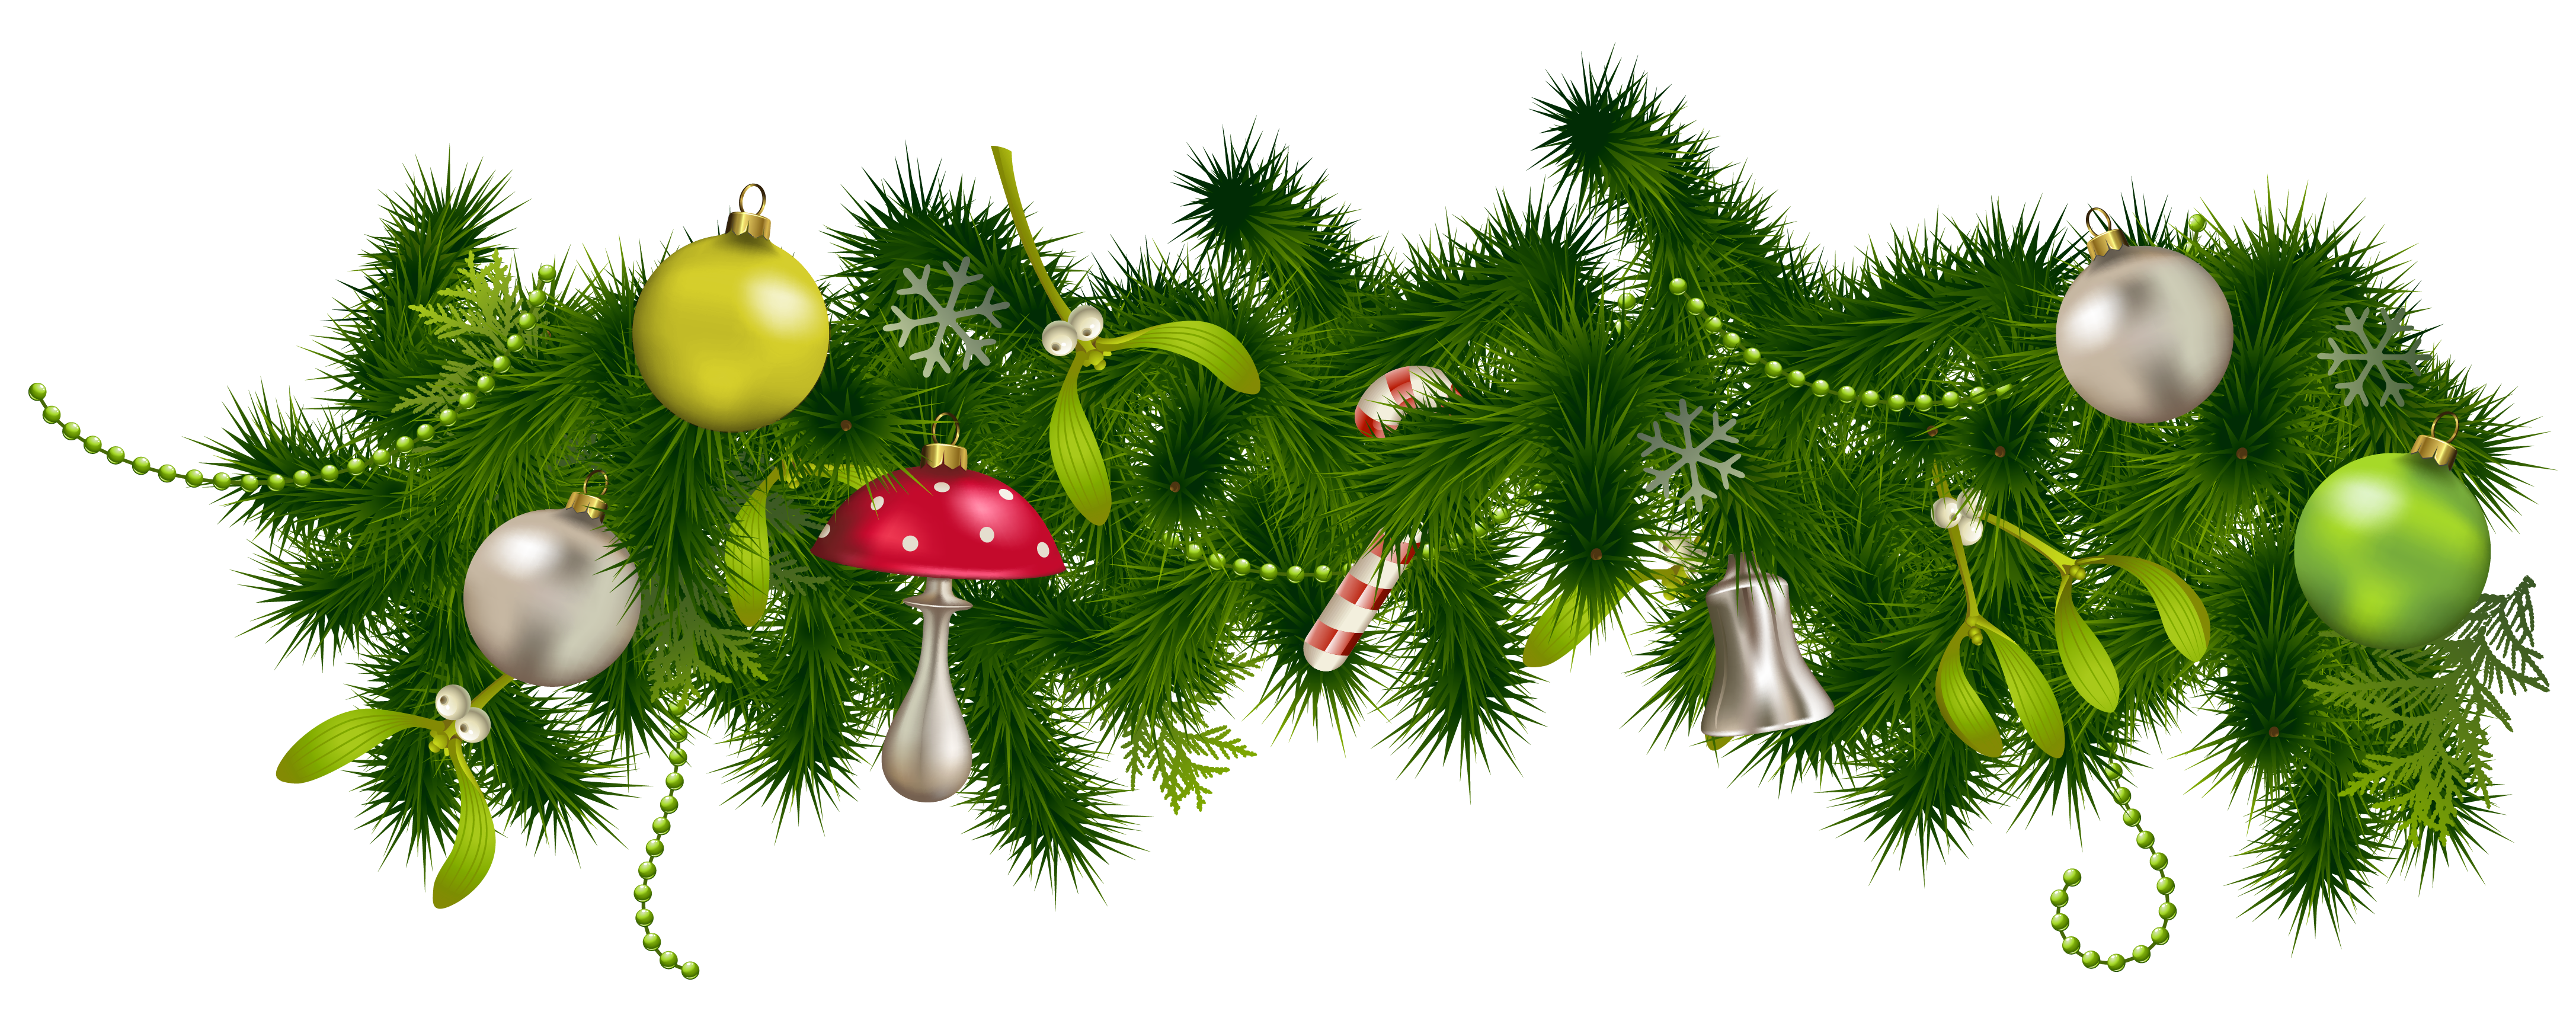 Pine decor clipart gallery. Christmas garland border transparent png